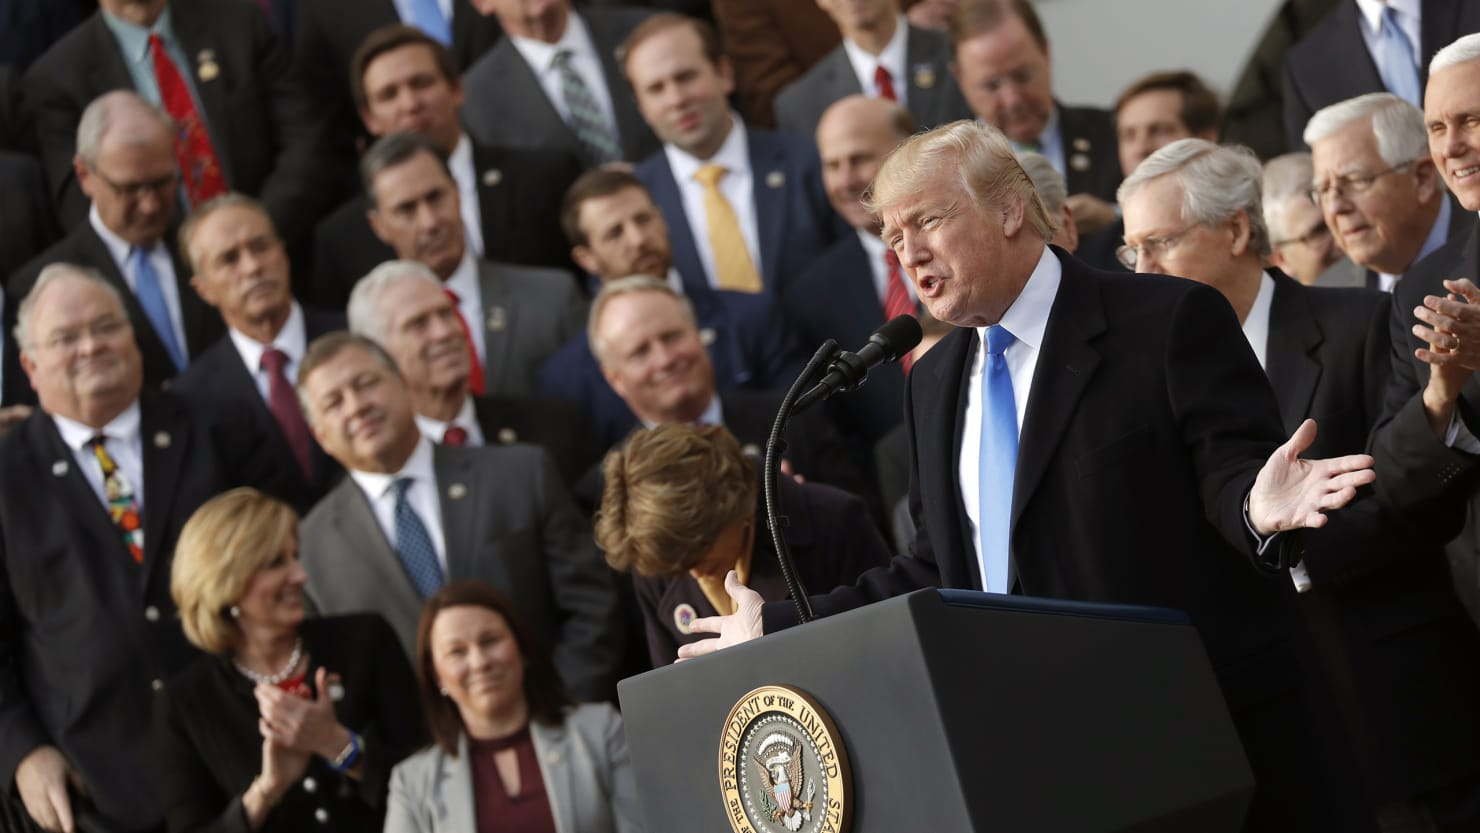 U.S. President Donald Trump celebrates with Congressional Republicans after the U.S. Congress passed sweeping tax overhaul legislation, on the South Lawn of the White House in Washington, U.S., December 20, 2017.